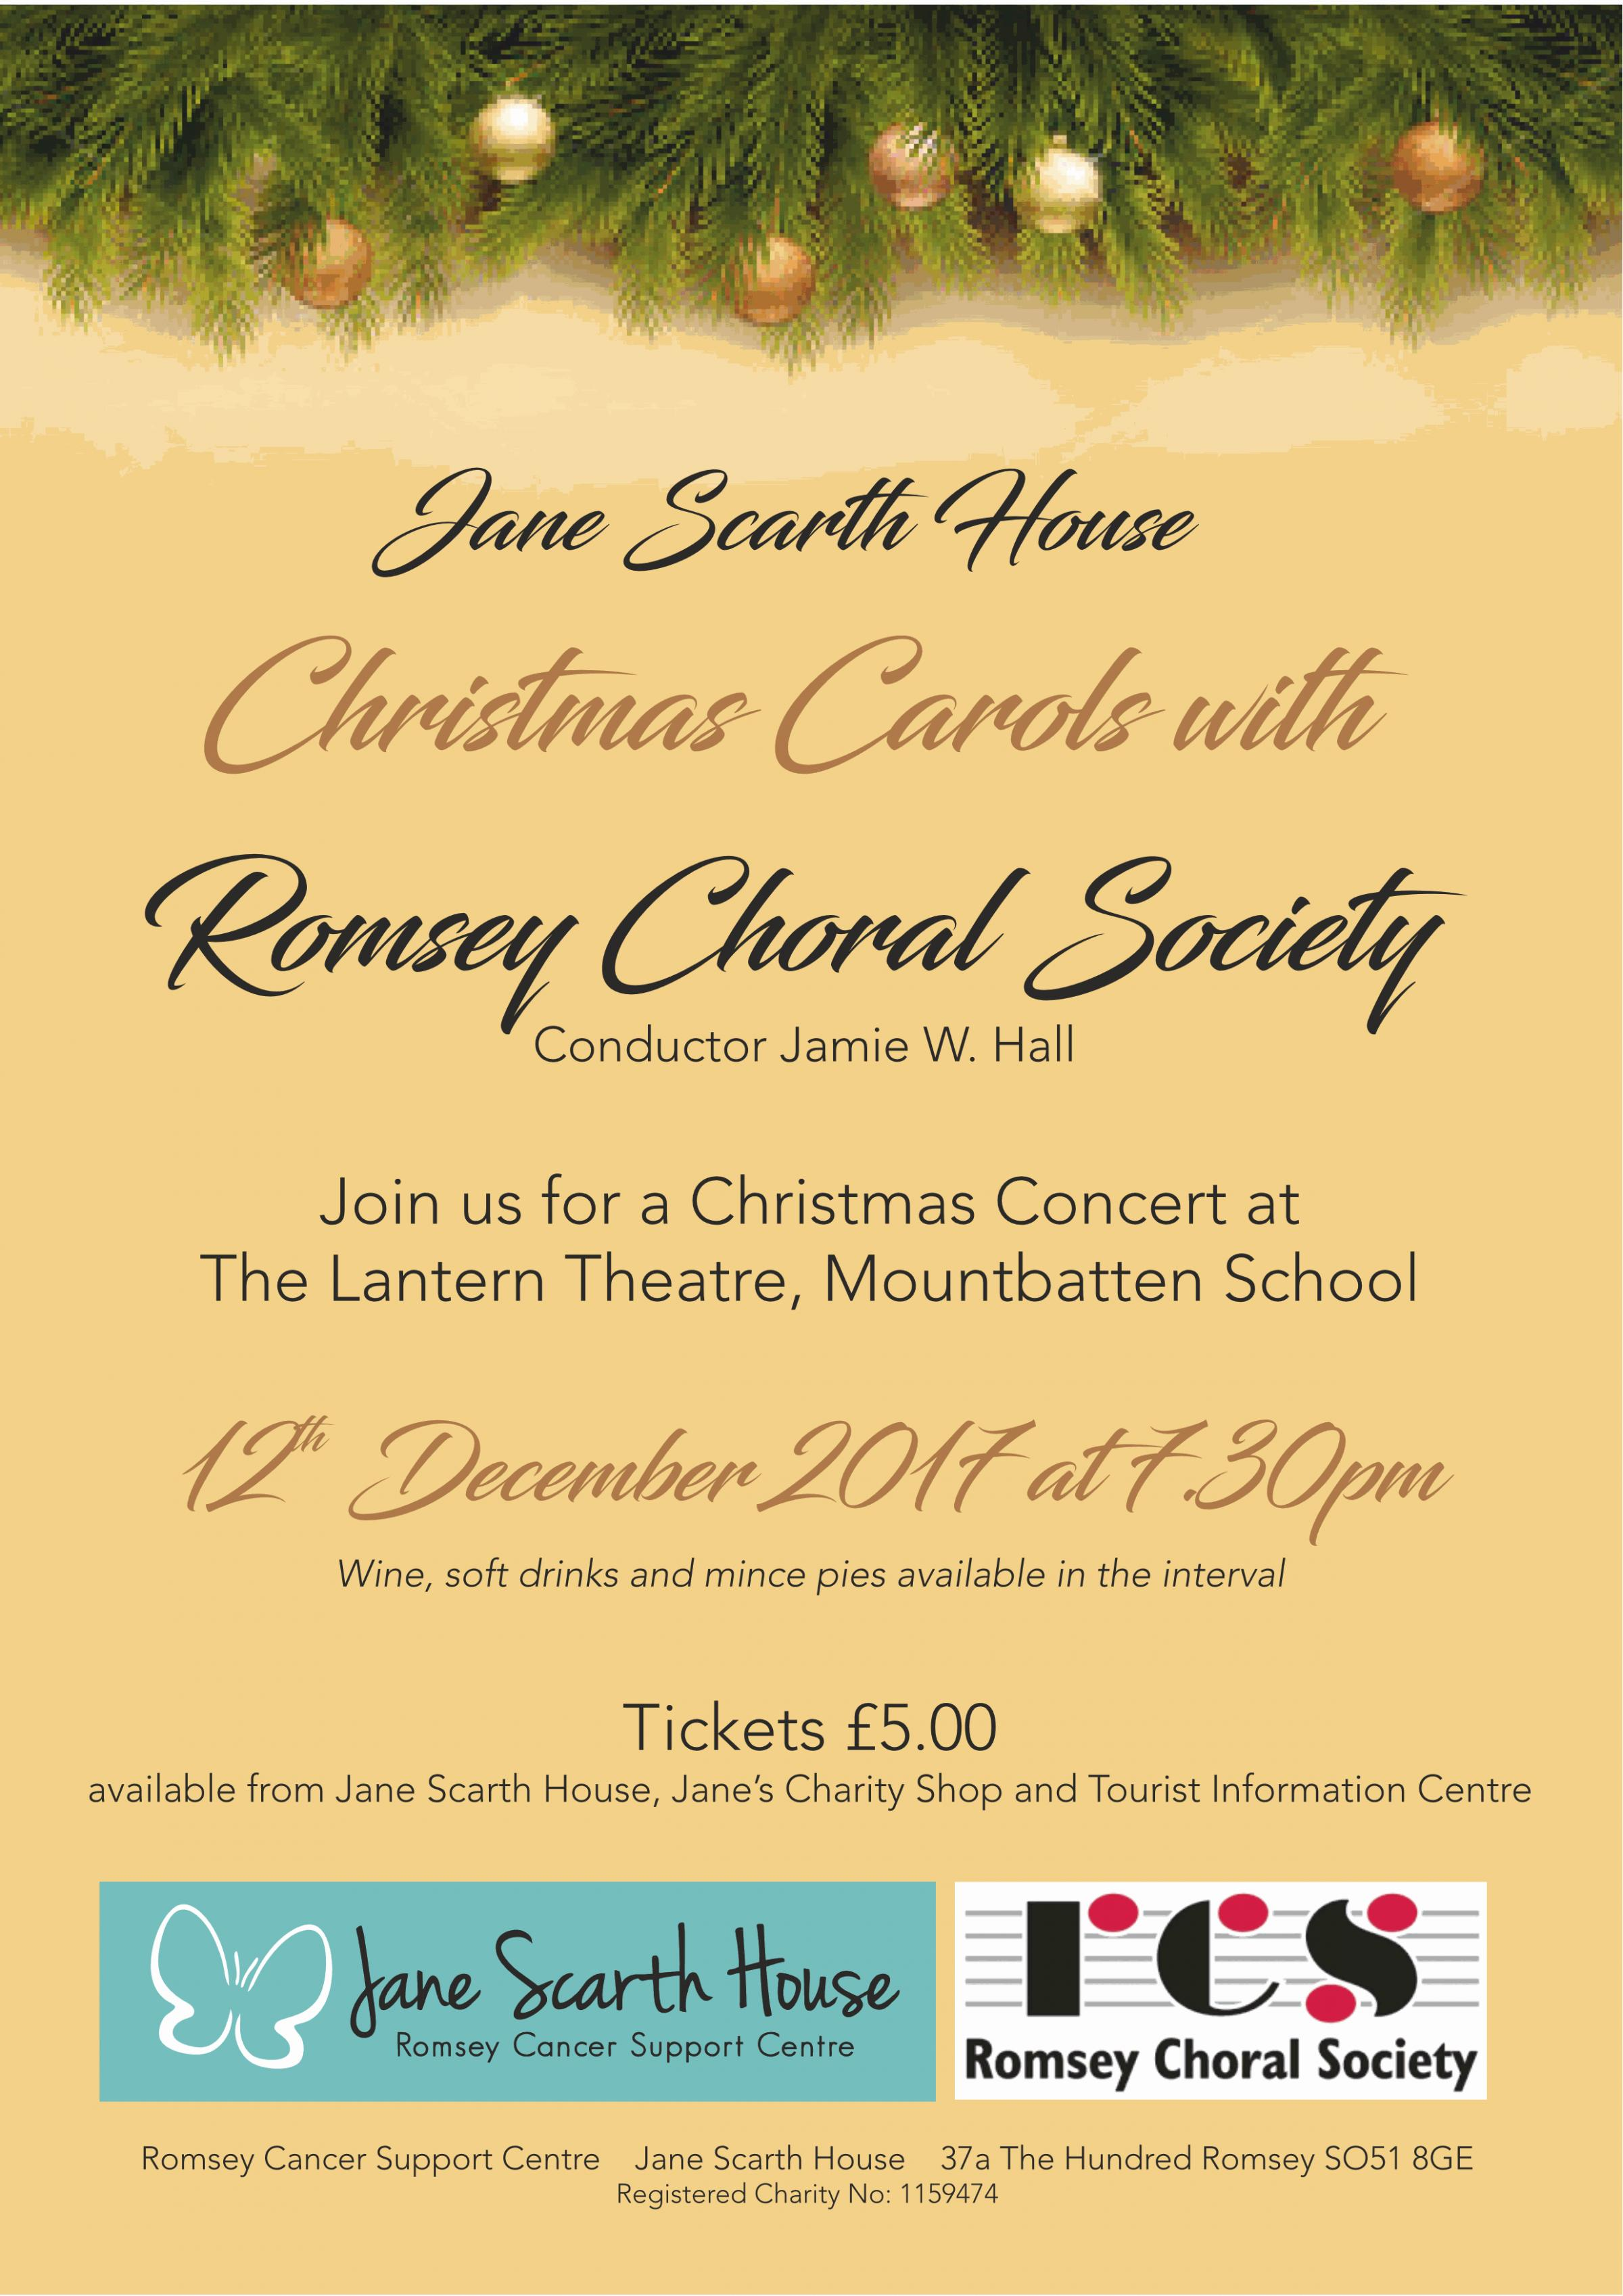 Romsey Choral Society's Christmas Concert